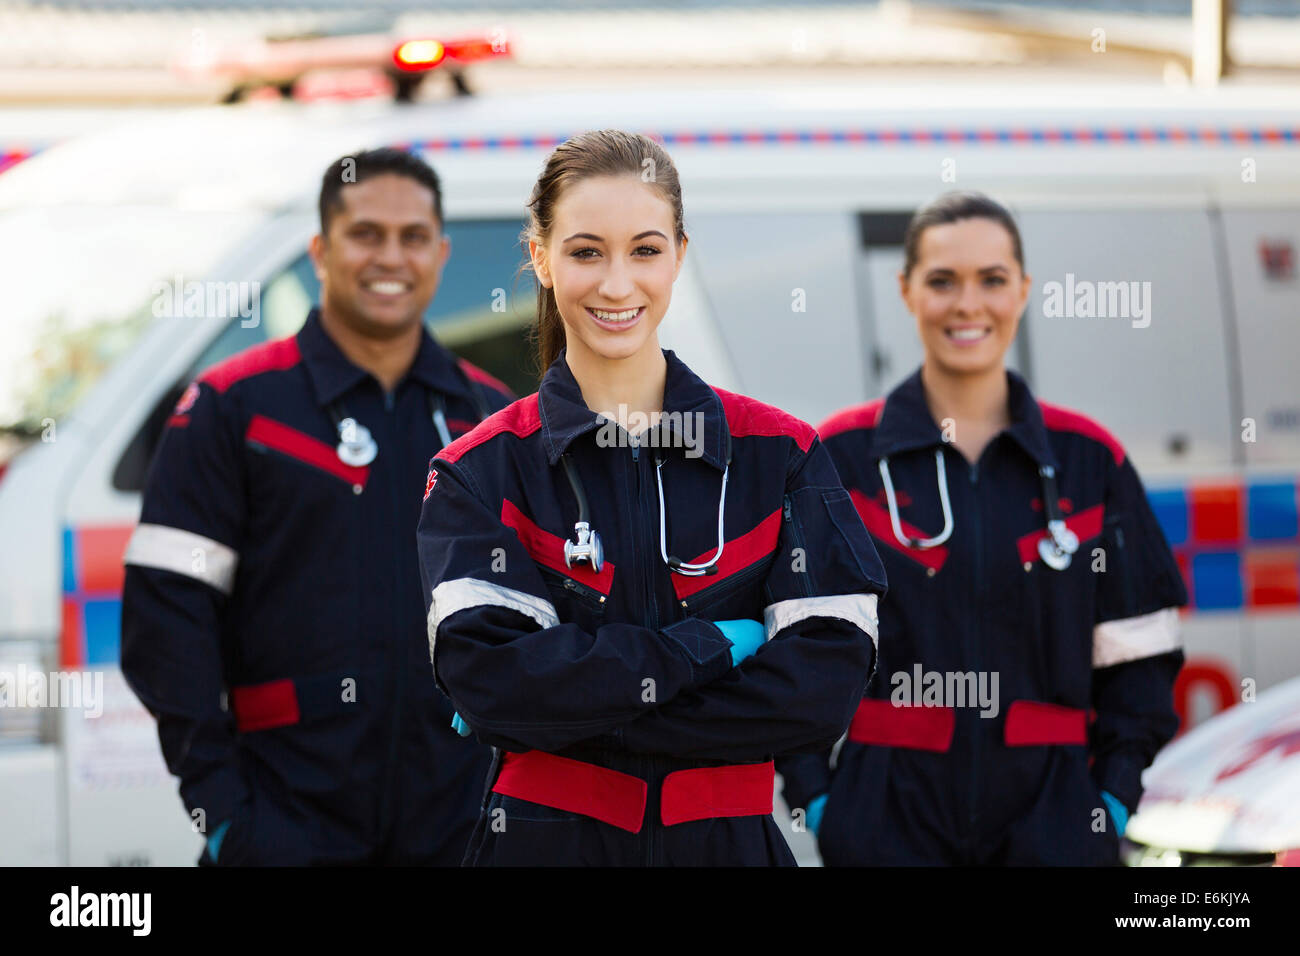 group of emergency medical technicians in front of ambulance Stock Photo